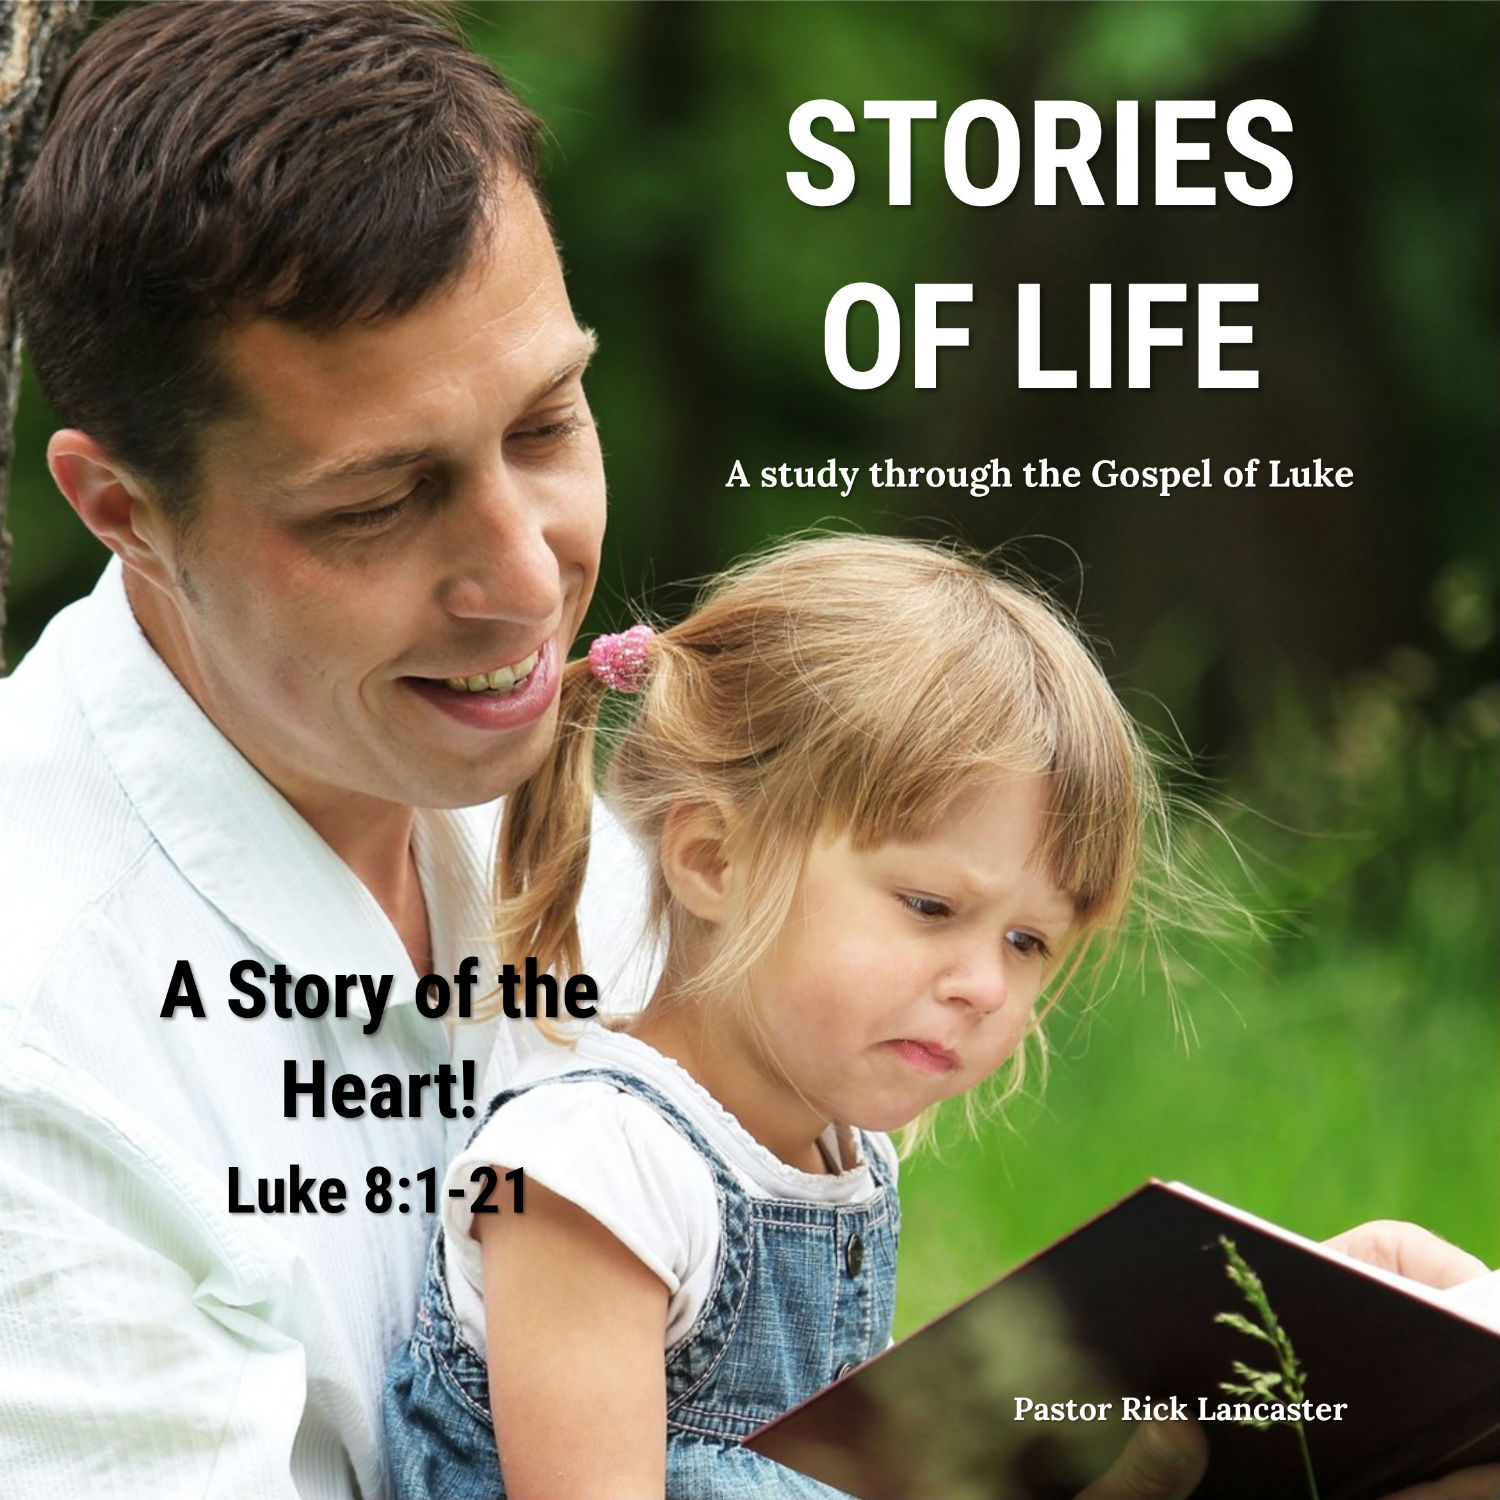 The Story Of The Heart! - Luke 8:1-21 Image